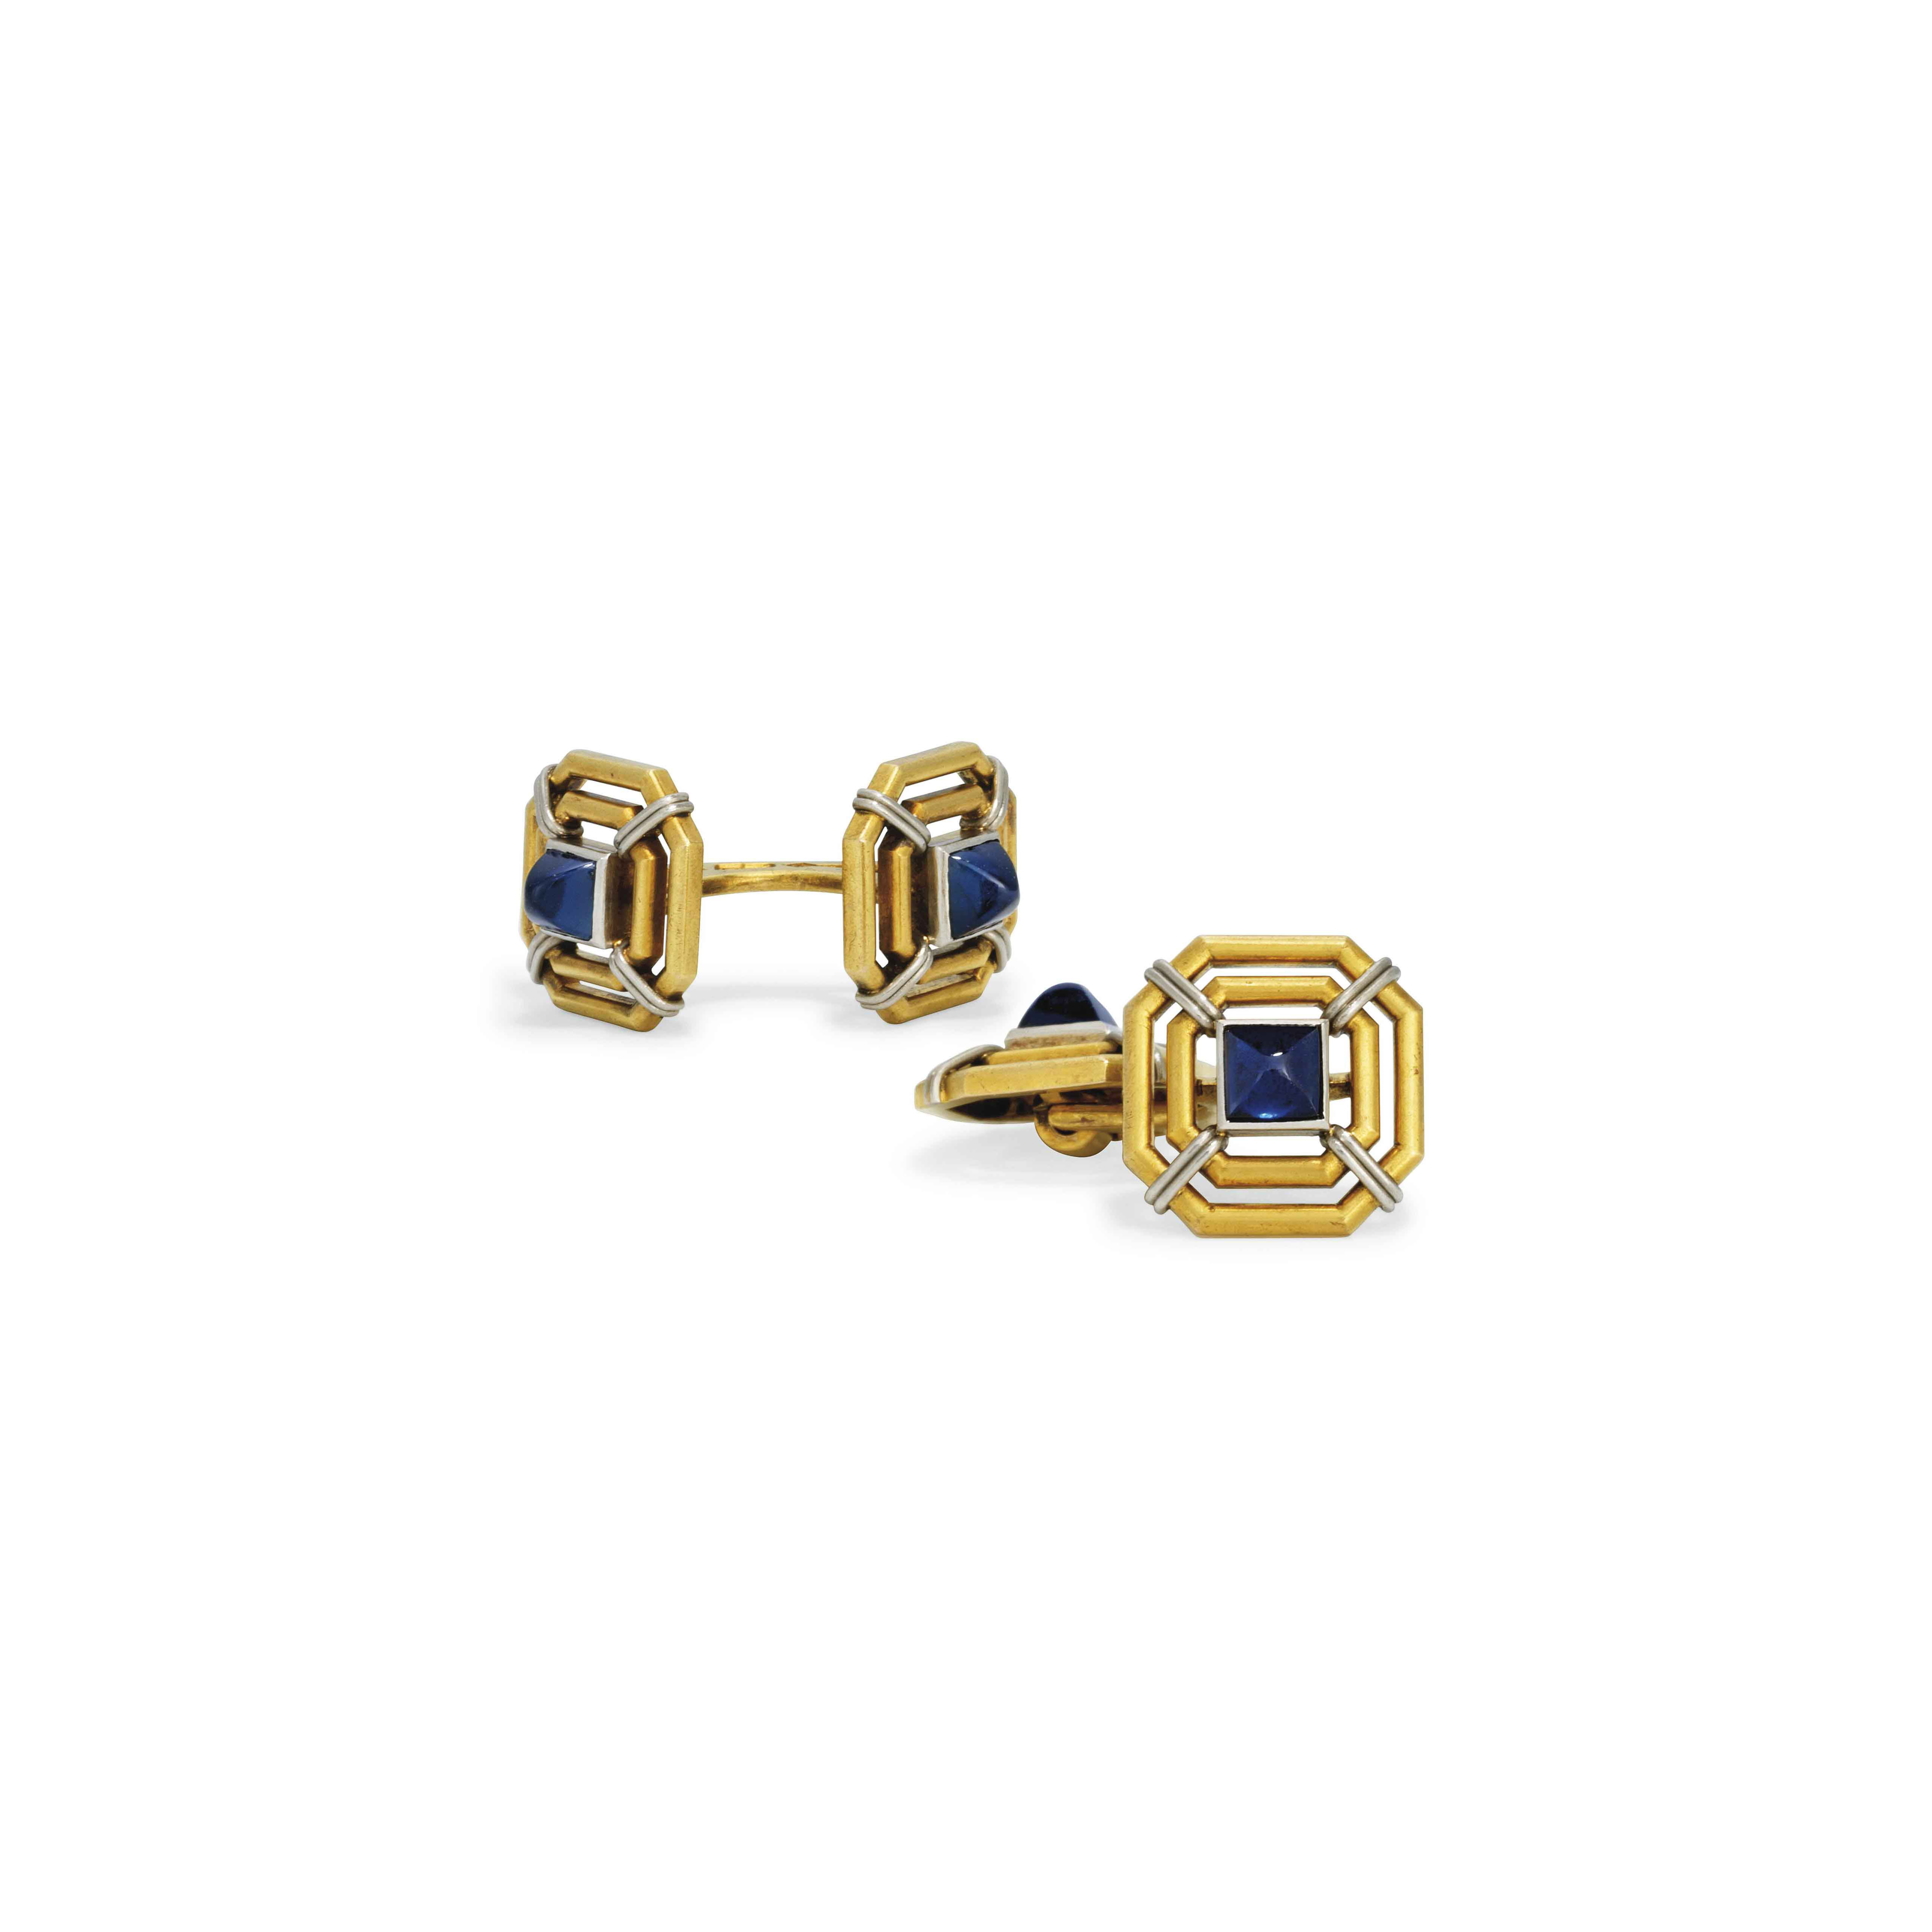 A PAIR OF JEWELLED GOLD AND PLATINUM CUFFLINKS